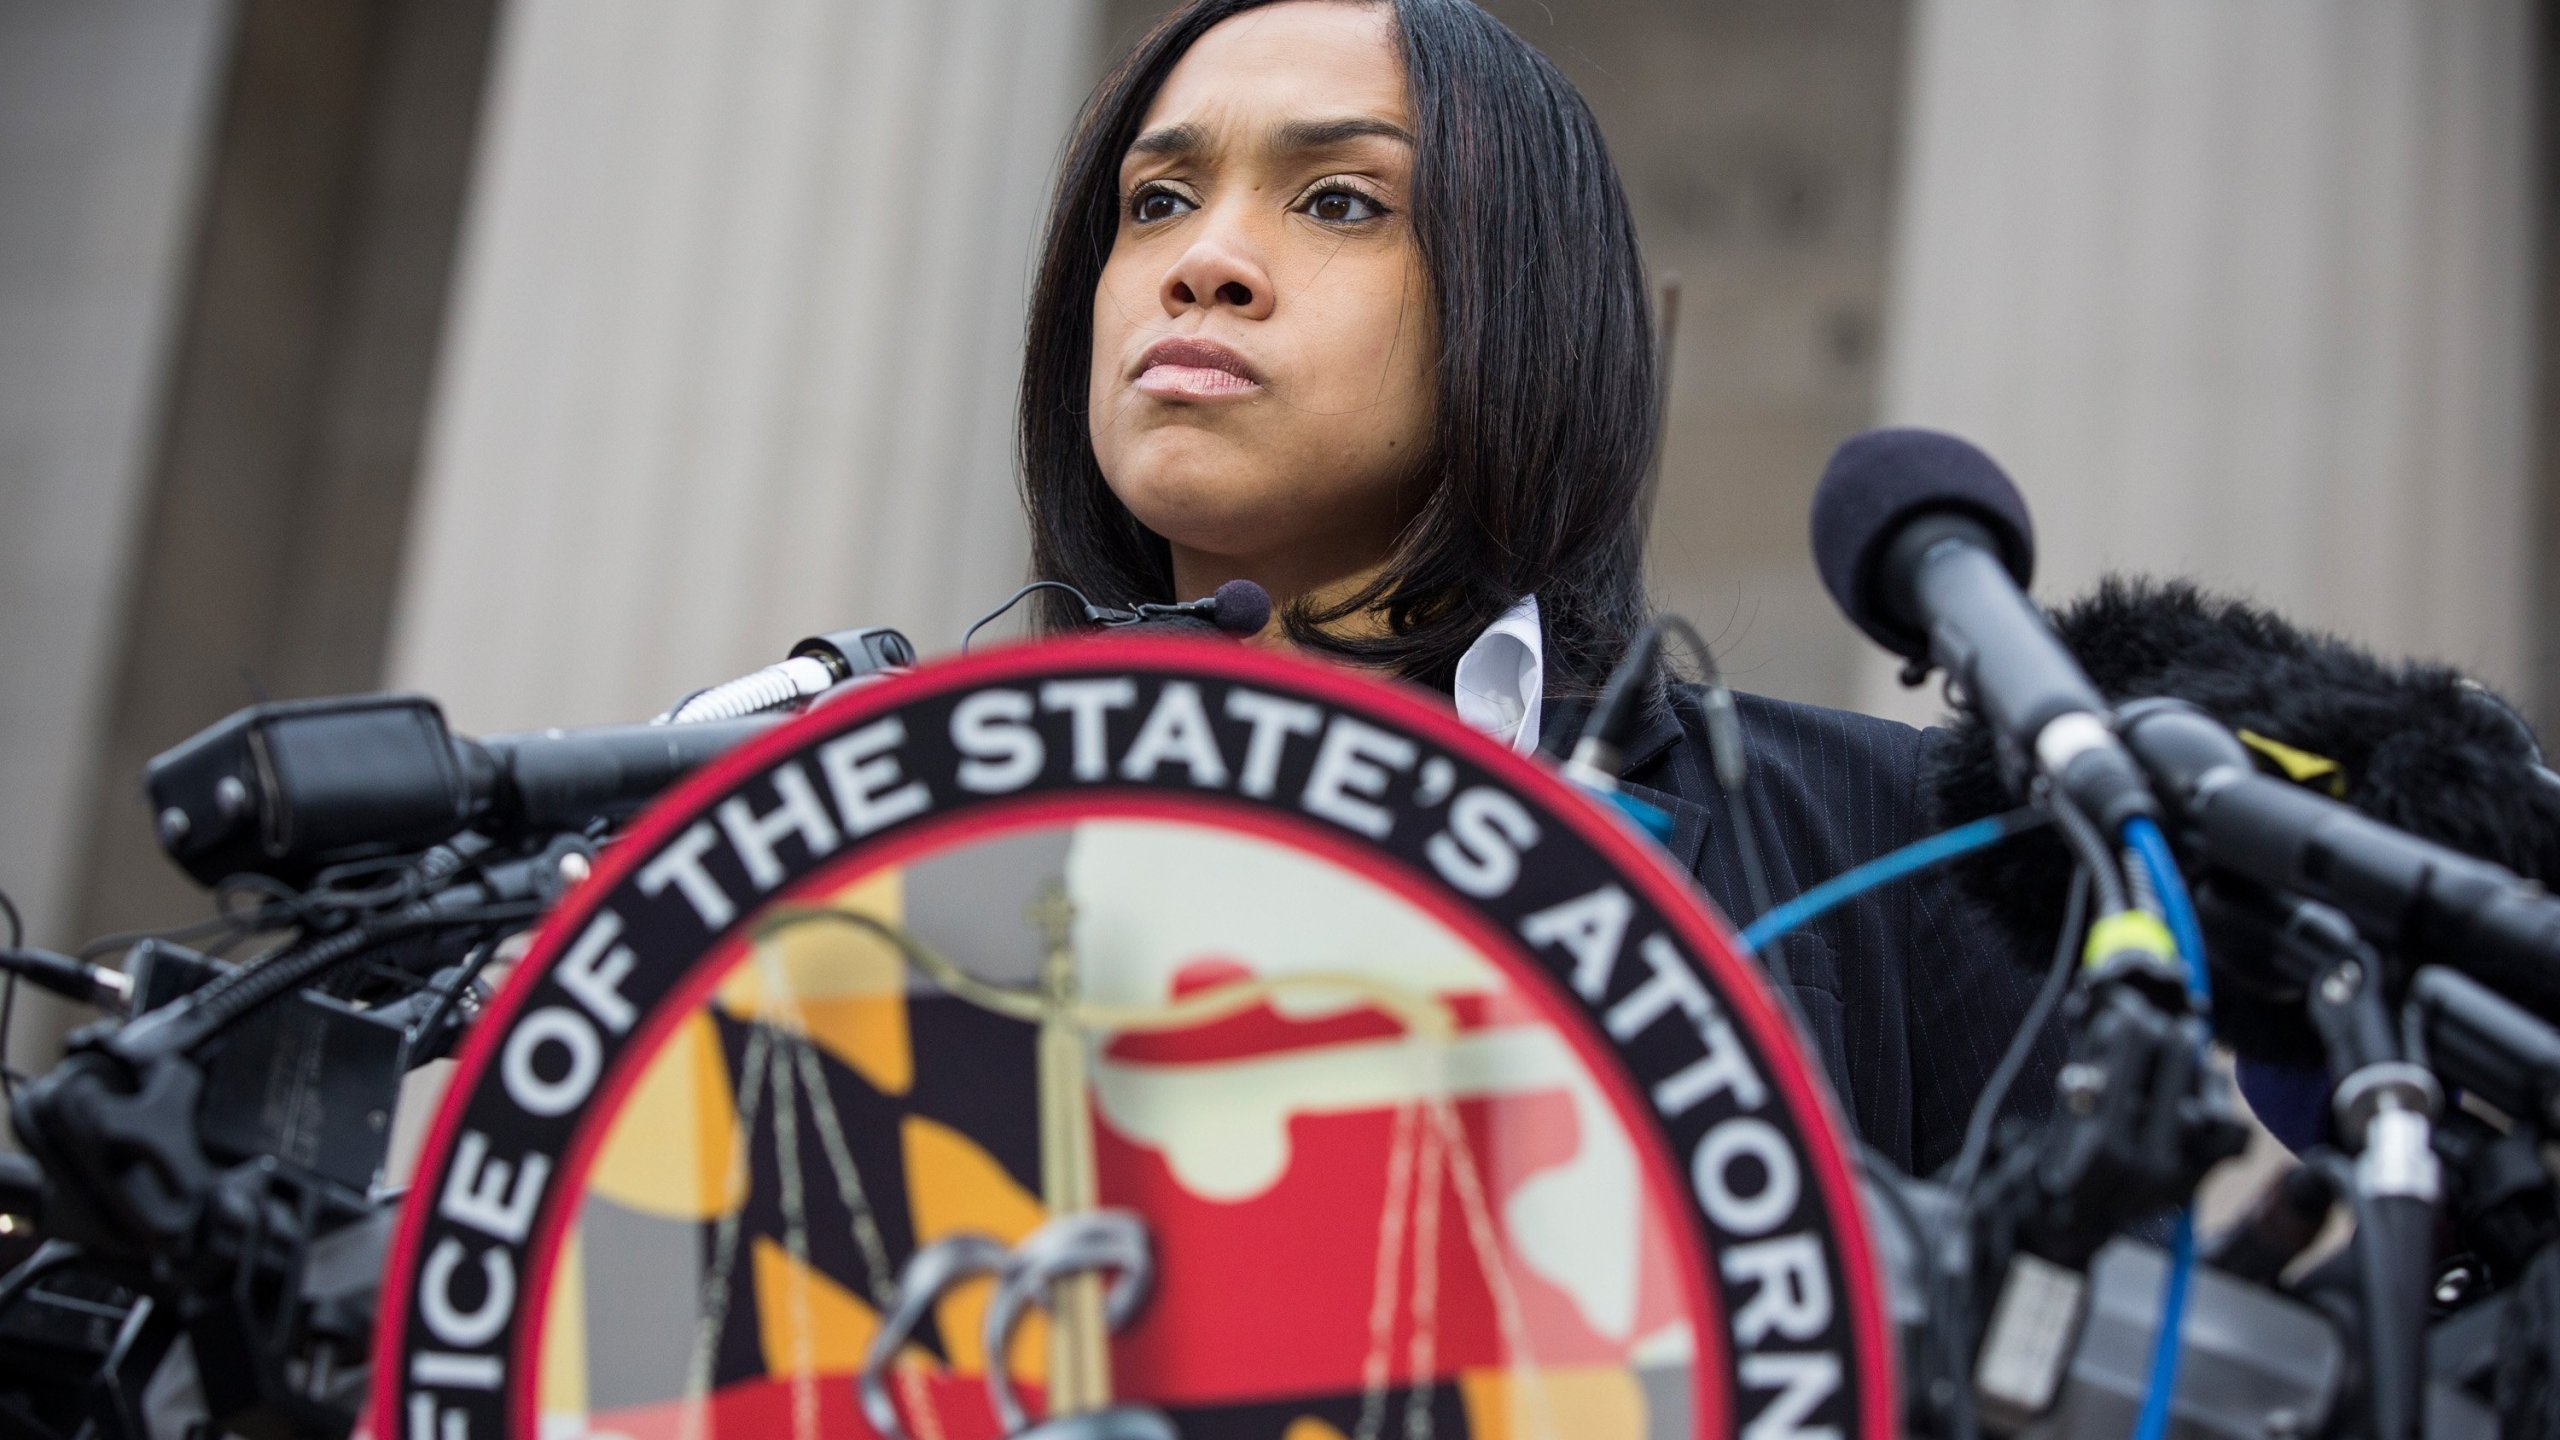 Nearly 800 criminal cases involving 25 police officers suspected of corruption are set to be thrown out in Baltimore, according to the city's chief prosecutor. (Credit: CNN)